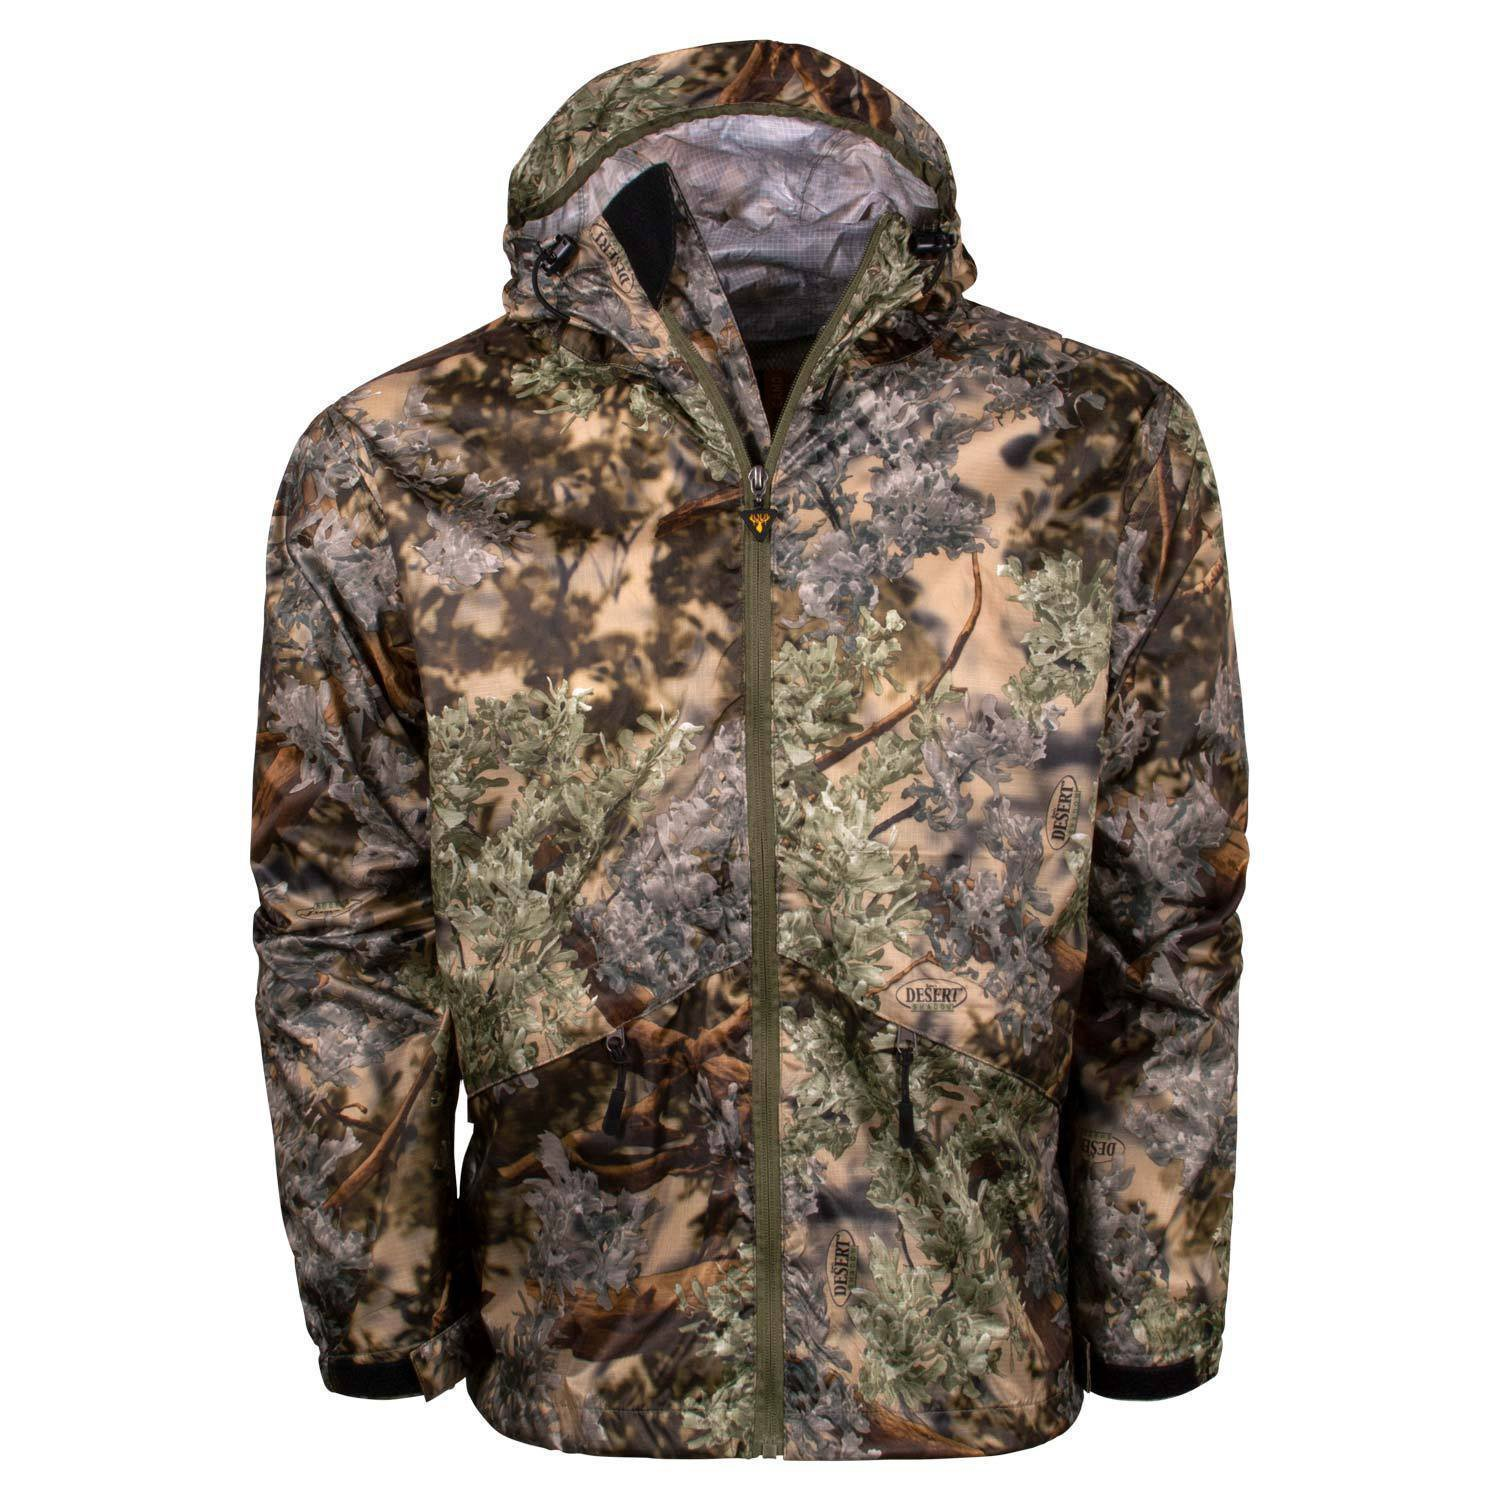 King's Camo Men's Hunter Series Climatex Rain Jacket